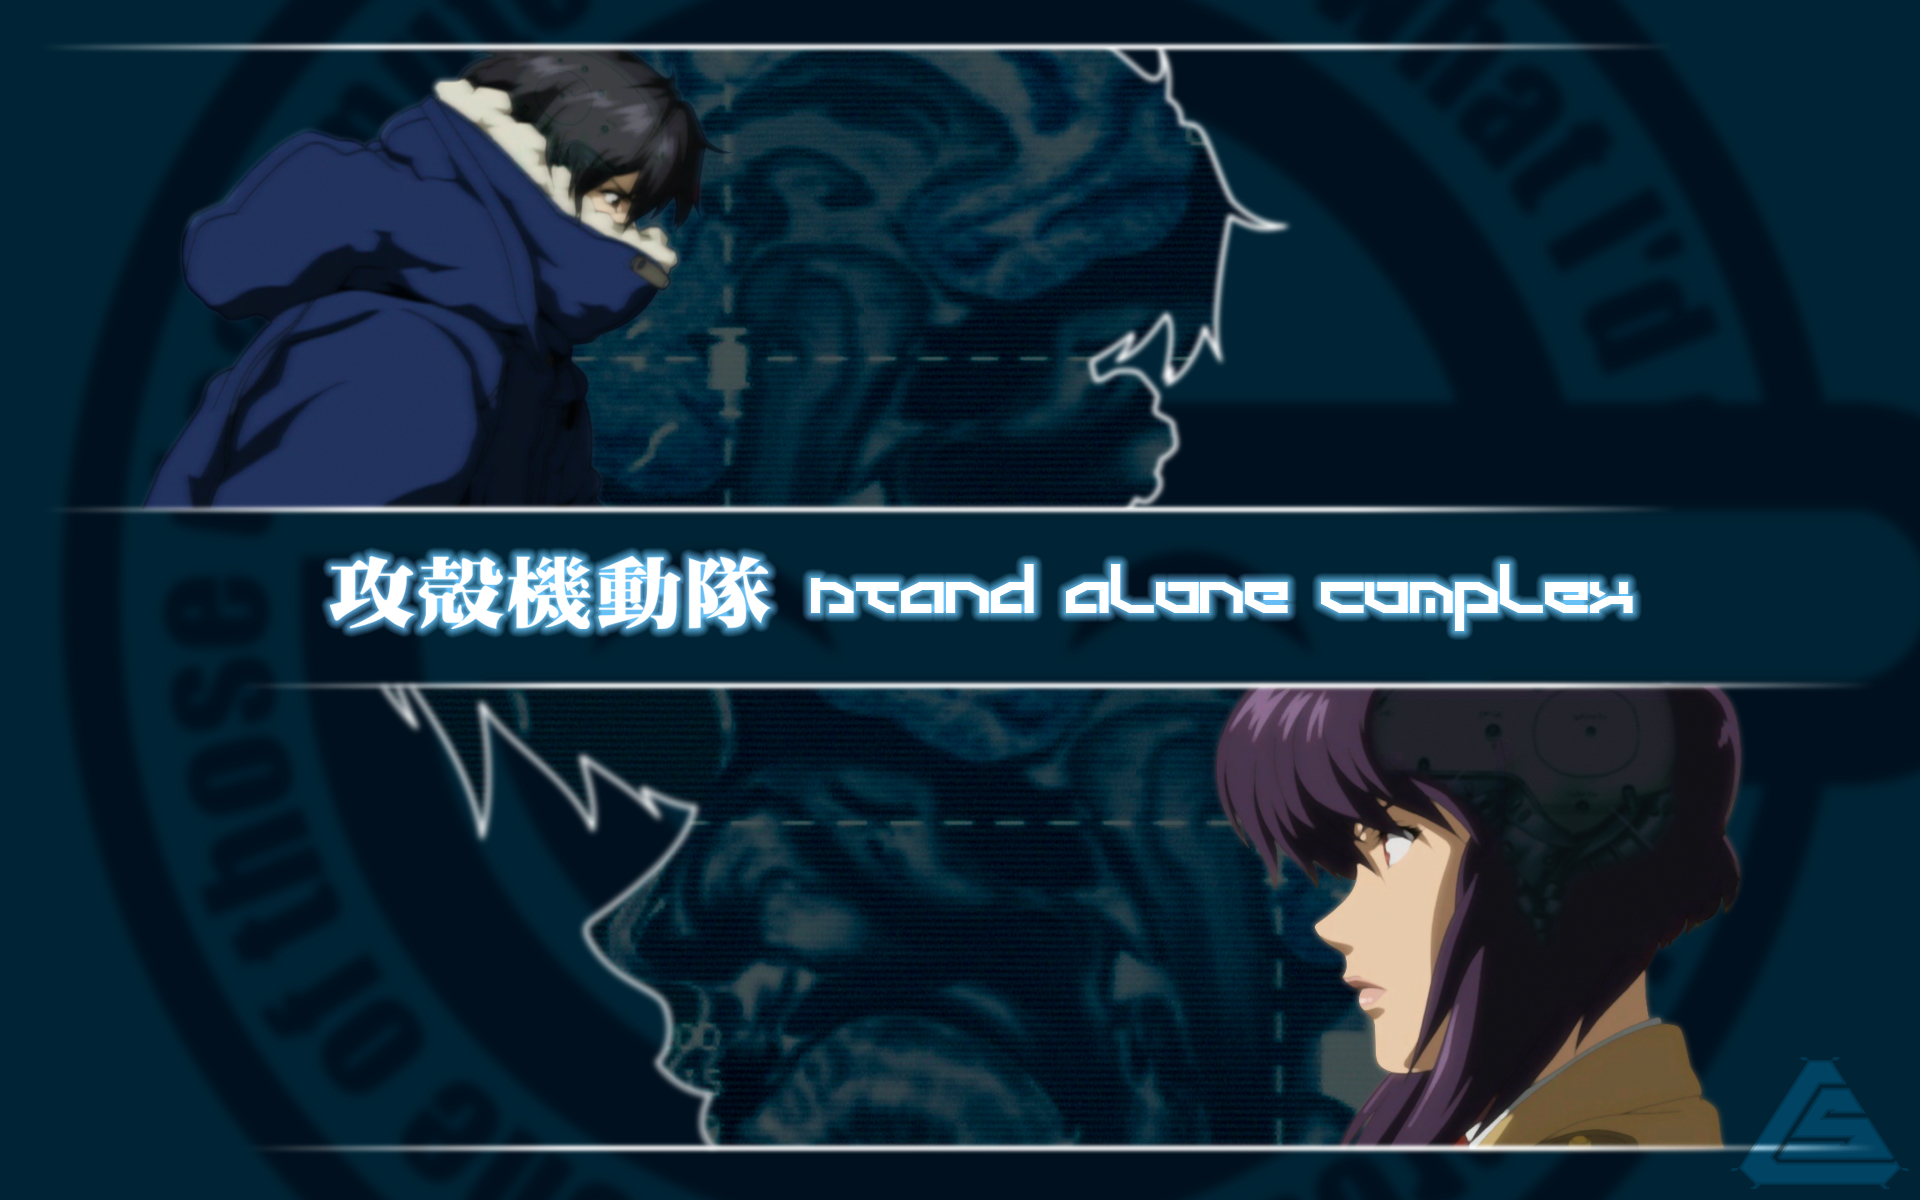 motoko kusanagi alone major HD Wallpaper